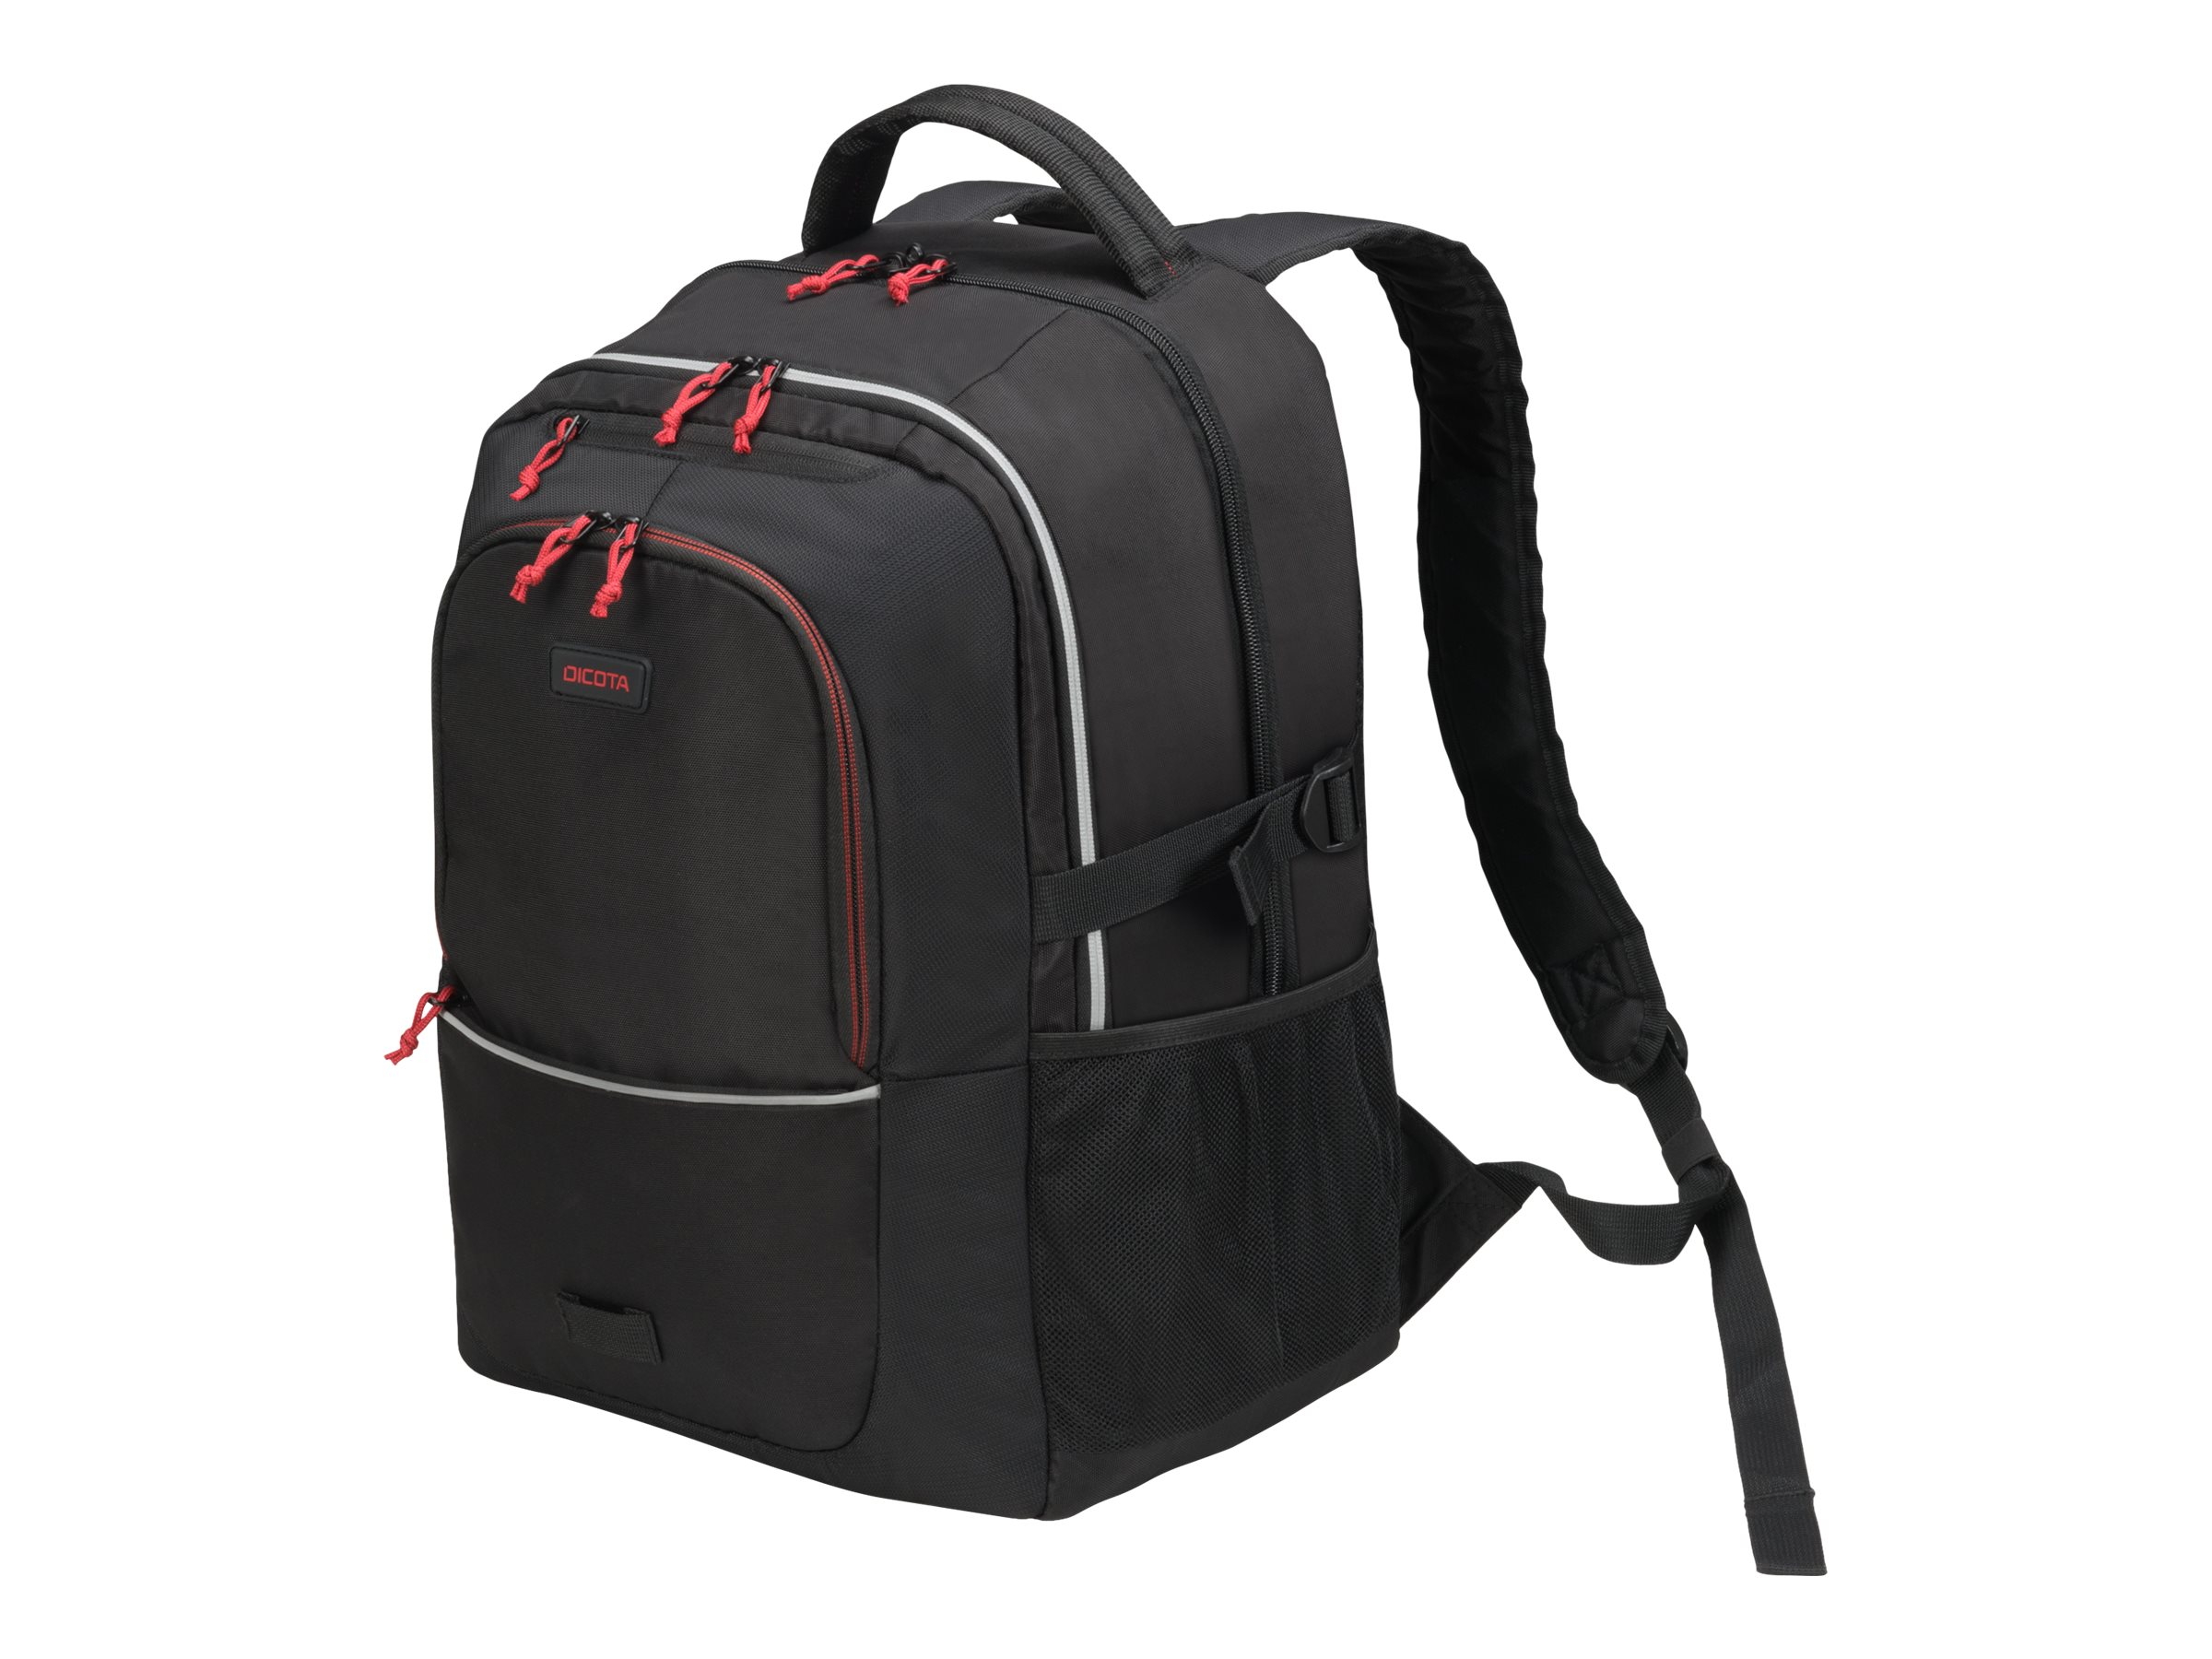 DICOTA Backpack Plus Spin - Notebook-Rucksack - 39.6 cm - 14